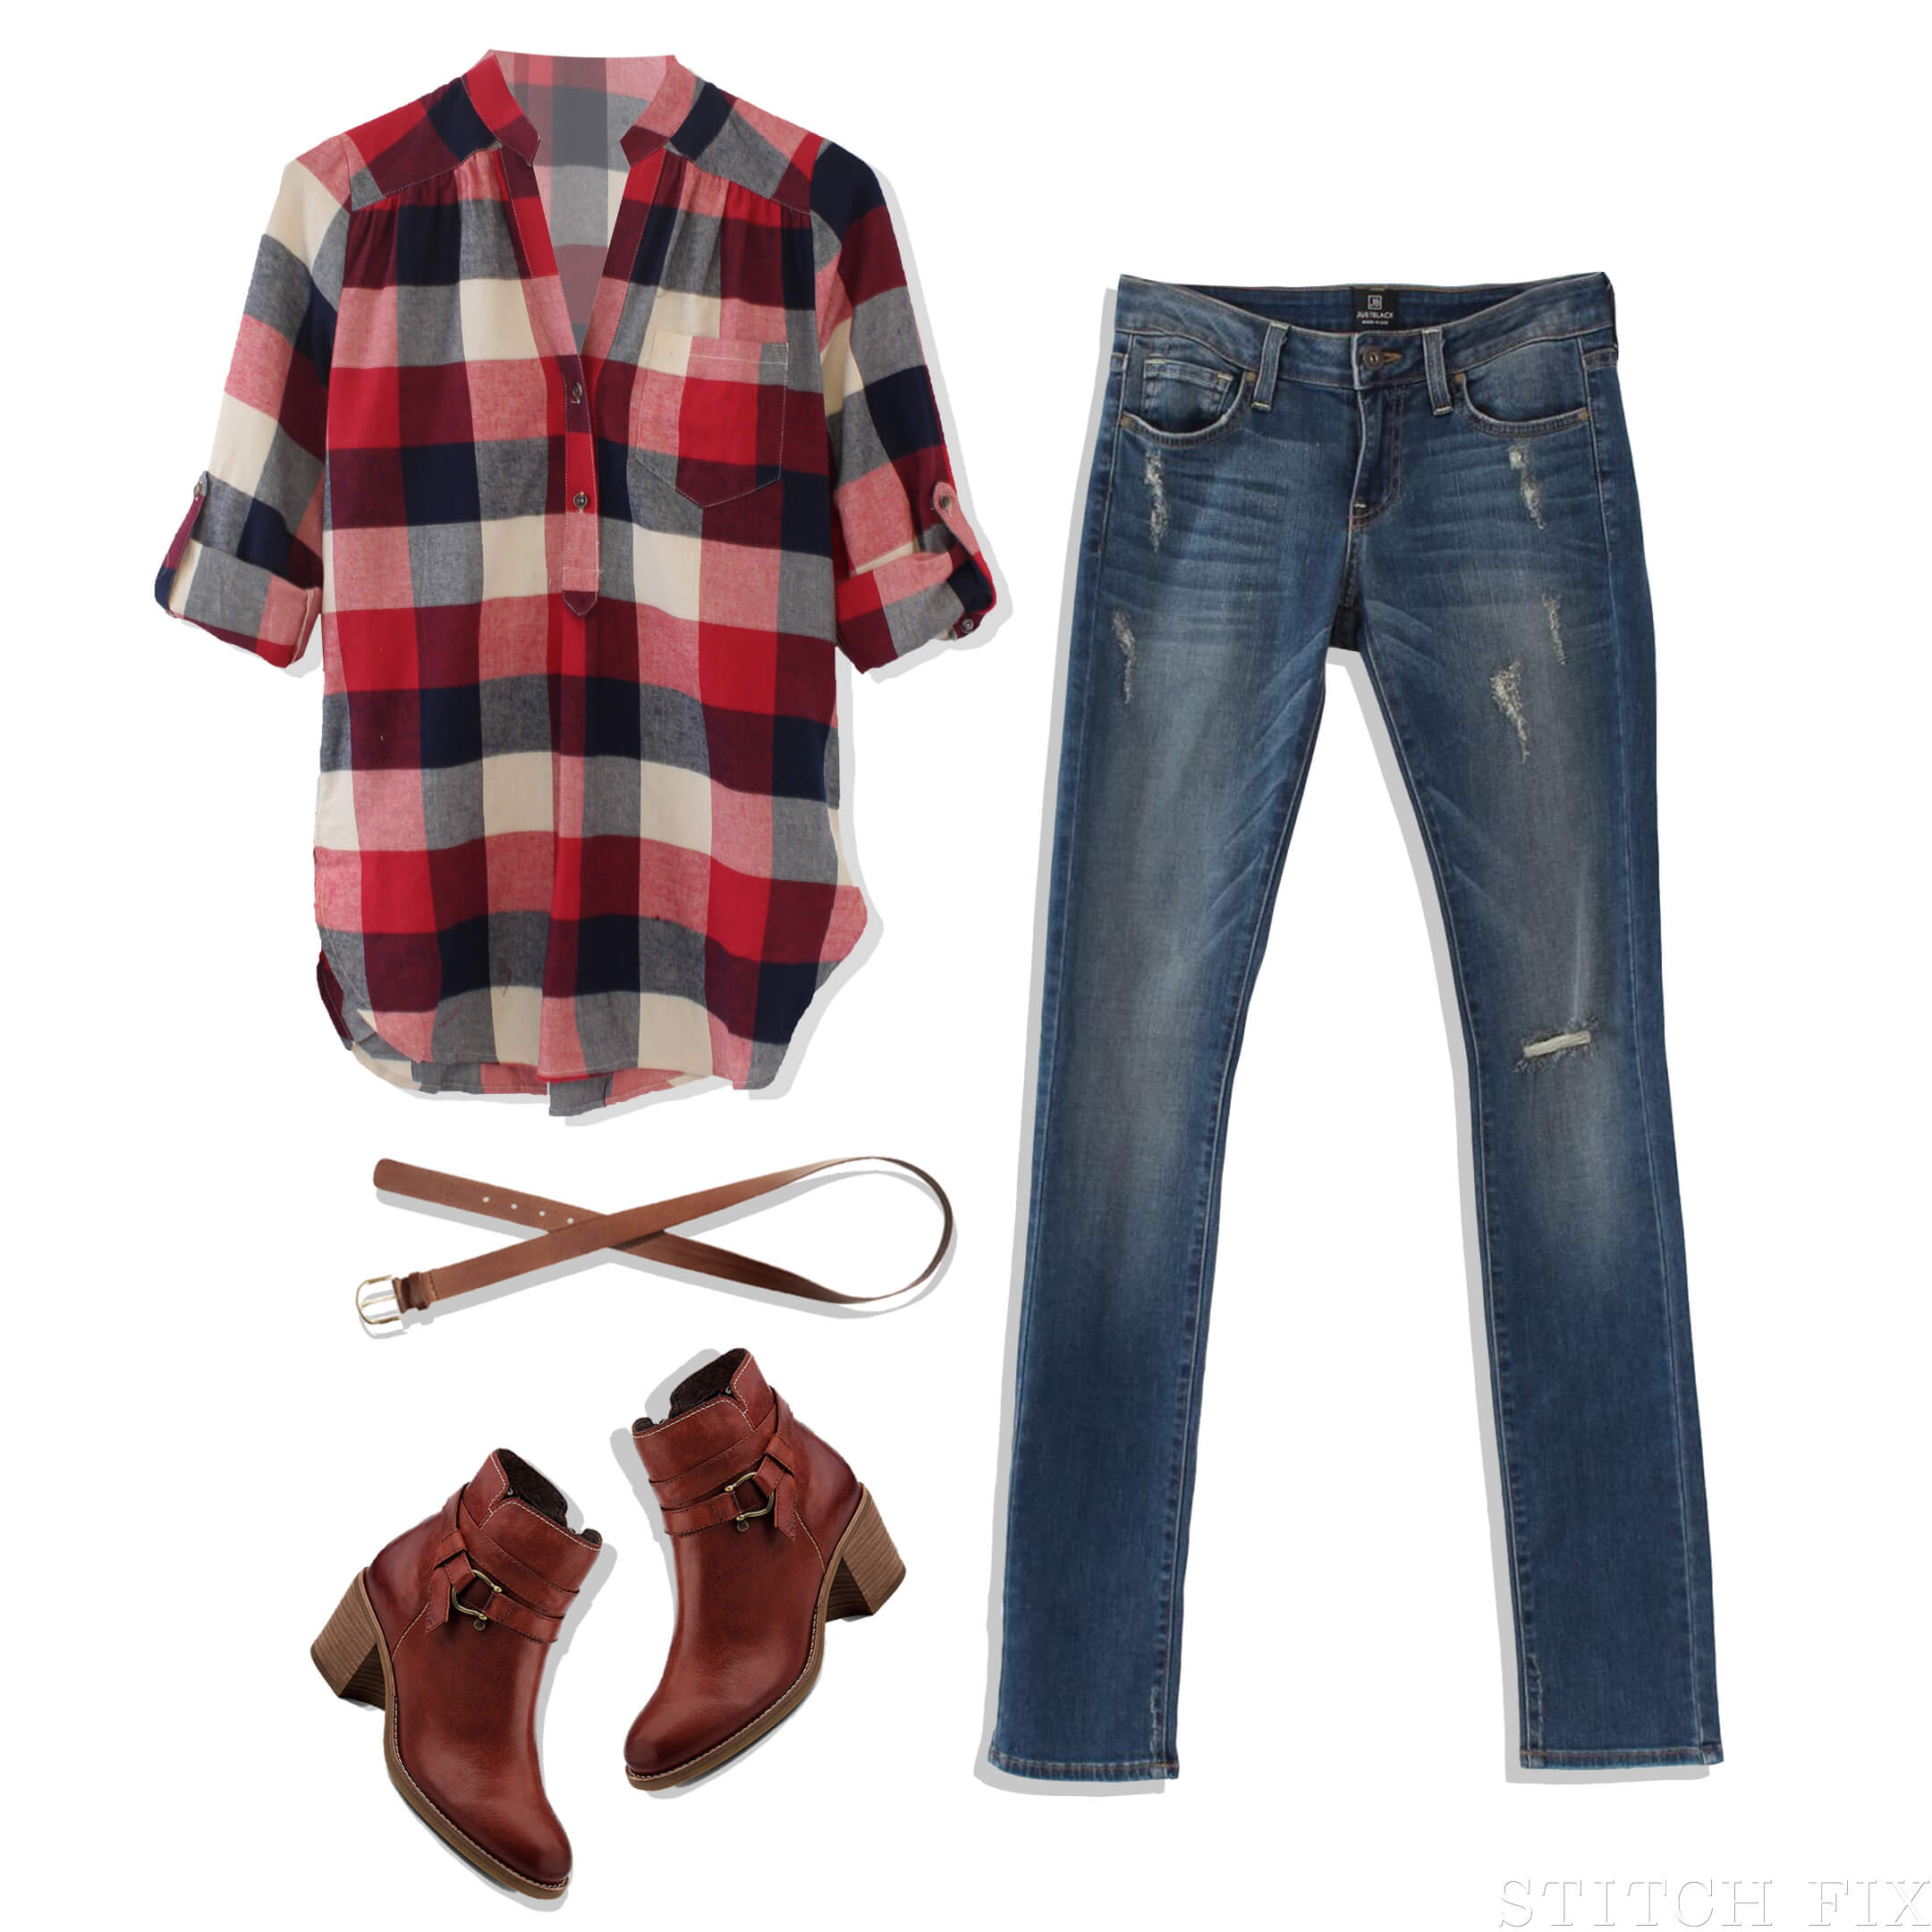 Simply Chic Plaid